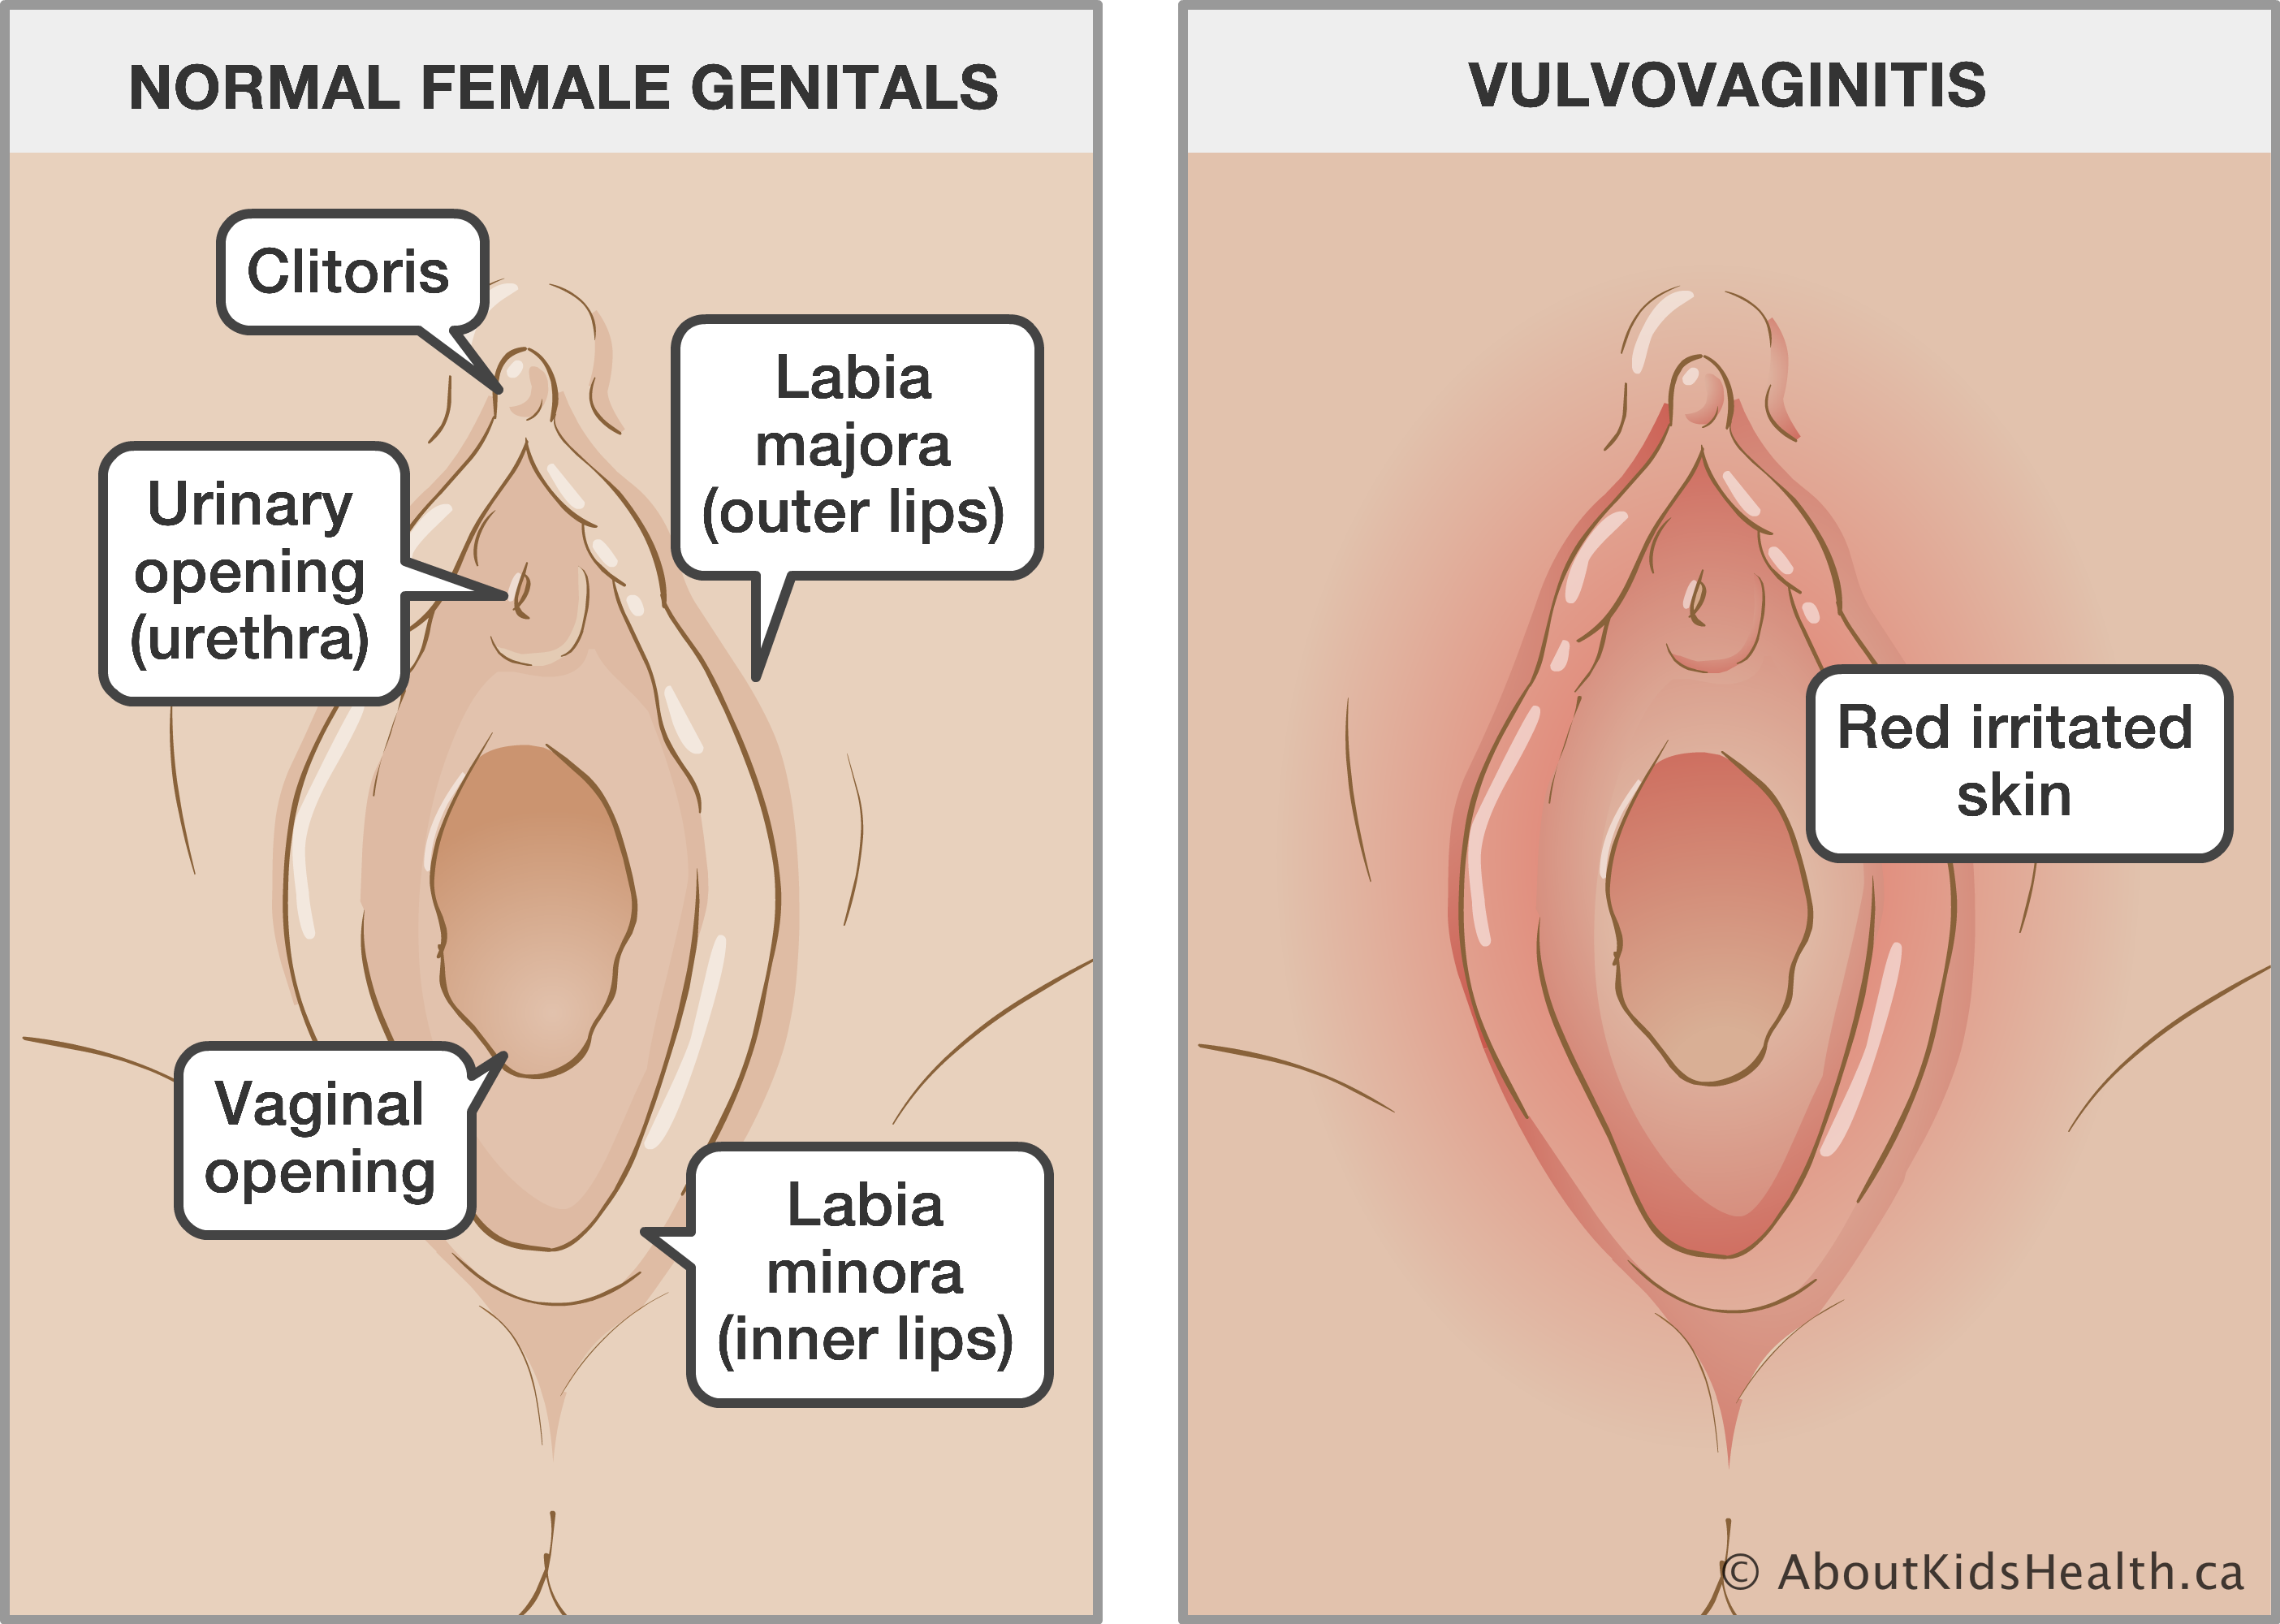 How long does a vaginal rash last